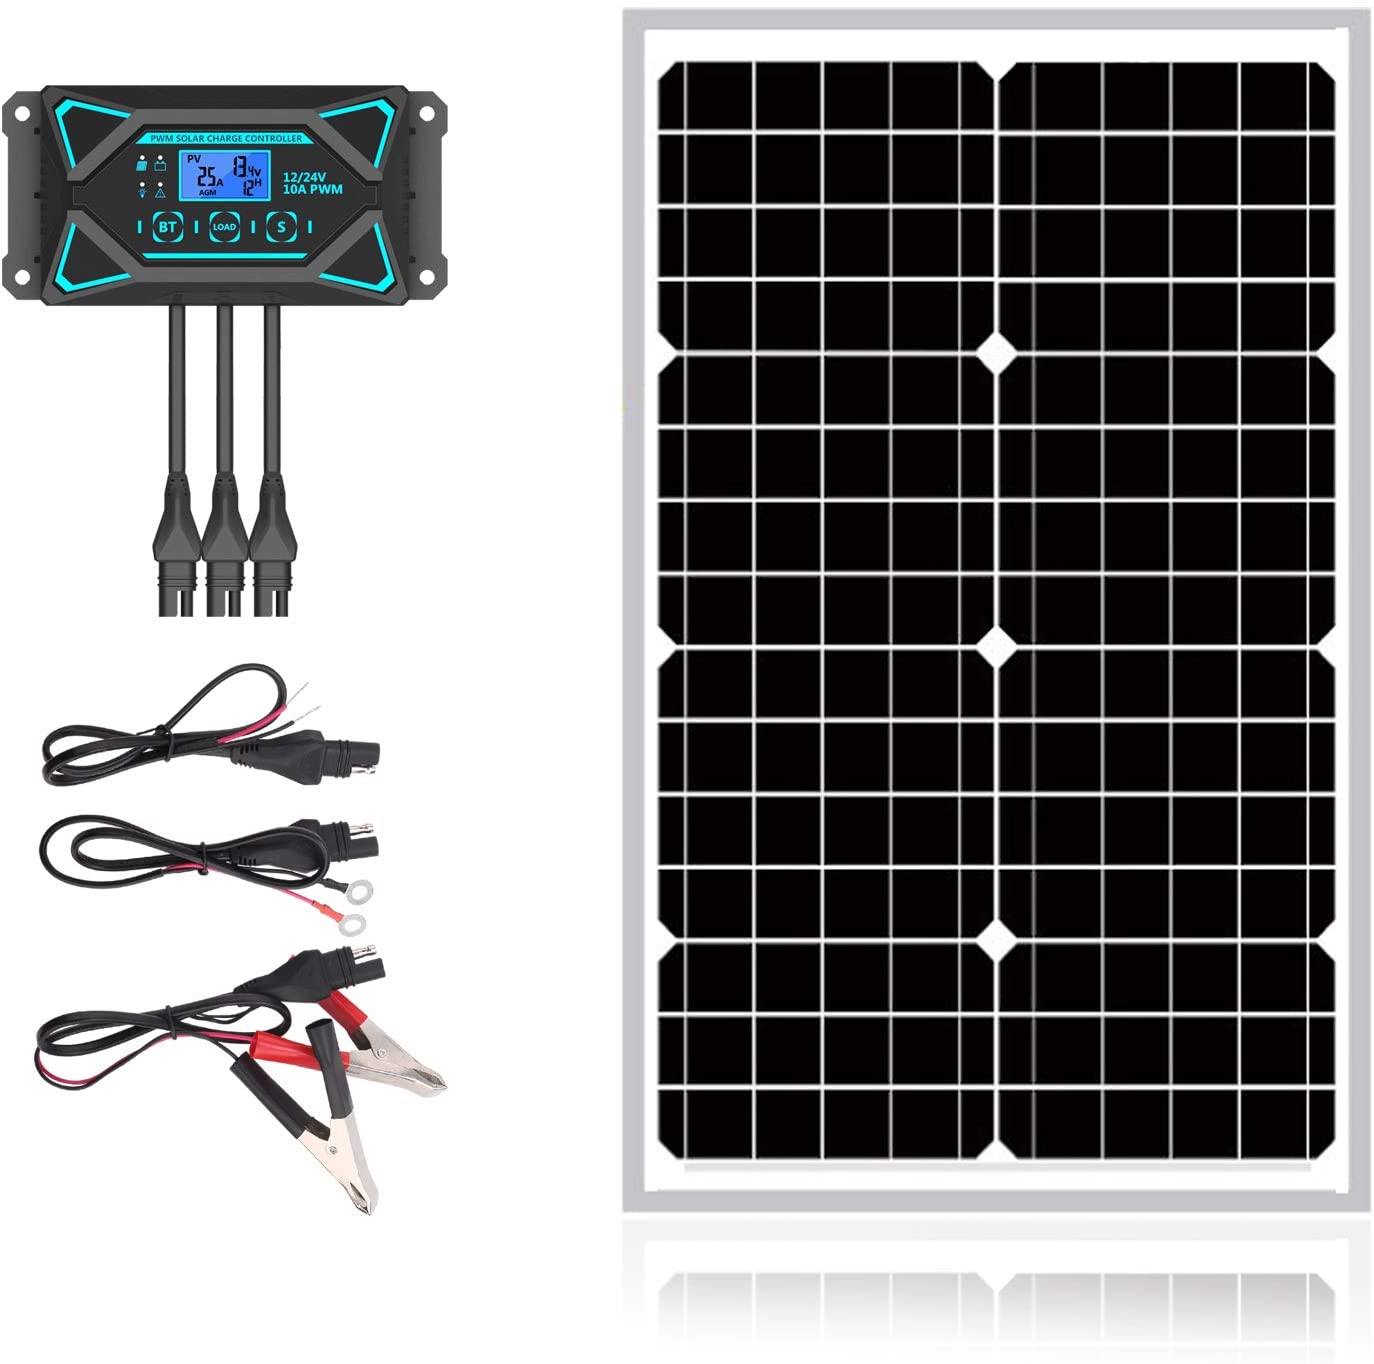 Sun Energise 30W 12V Solar Panel Kits- 30 Watt Mono Crystalline Solar Panel + Intelligent 10A Charge Controller with Dusk to Dawn Control + Cable Adapters for Off Grid Boat, Marine, Trailer, Cabin